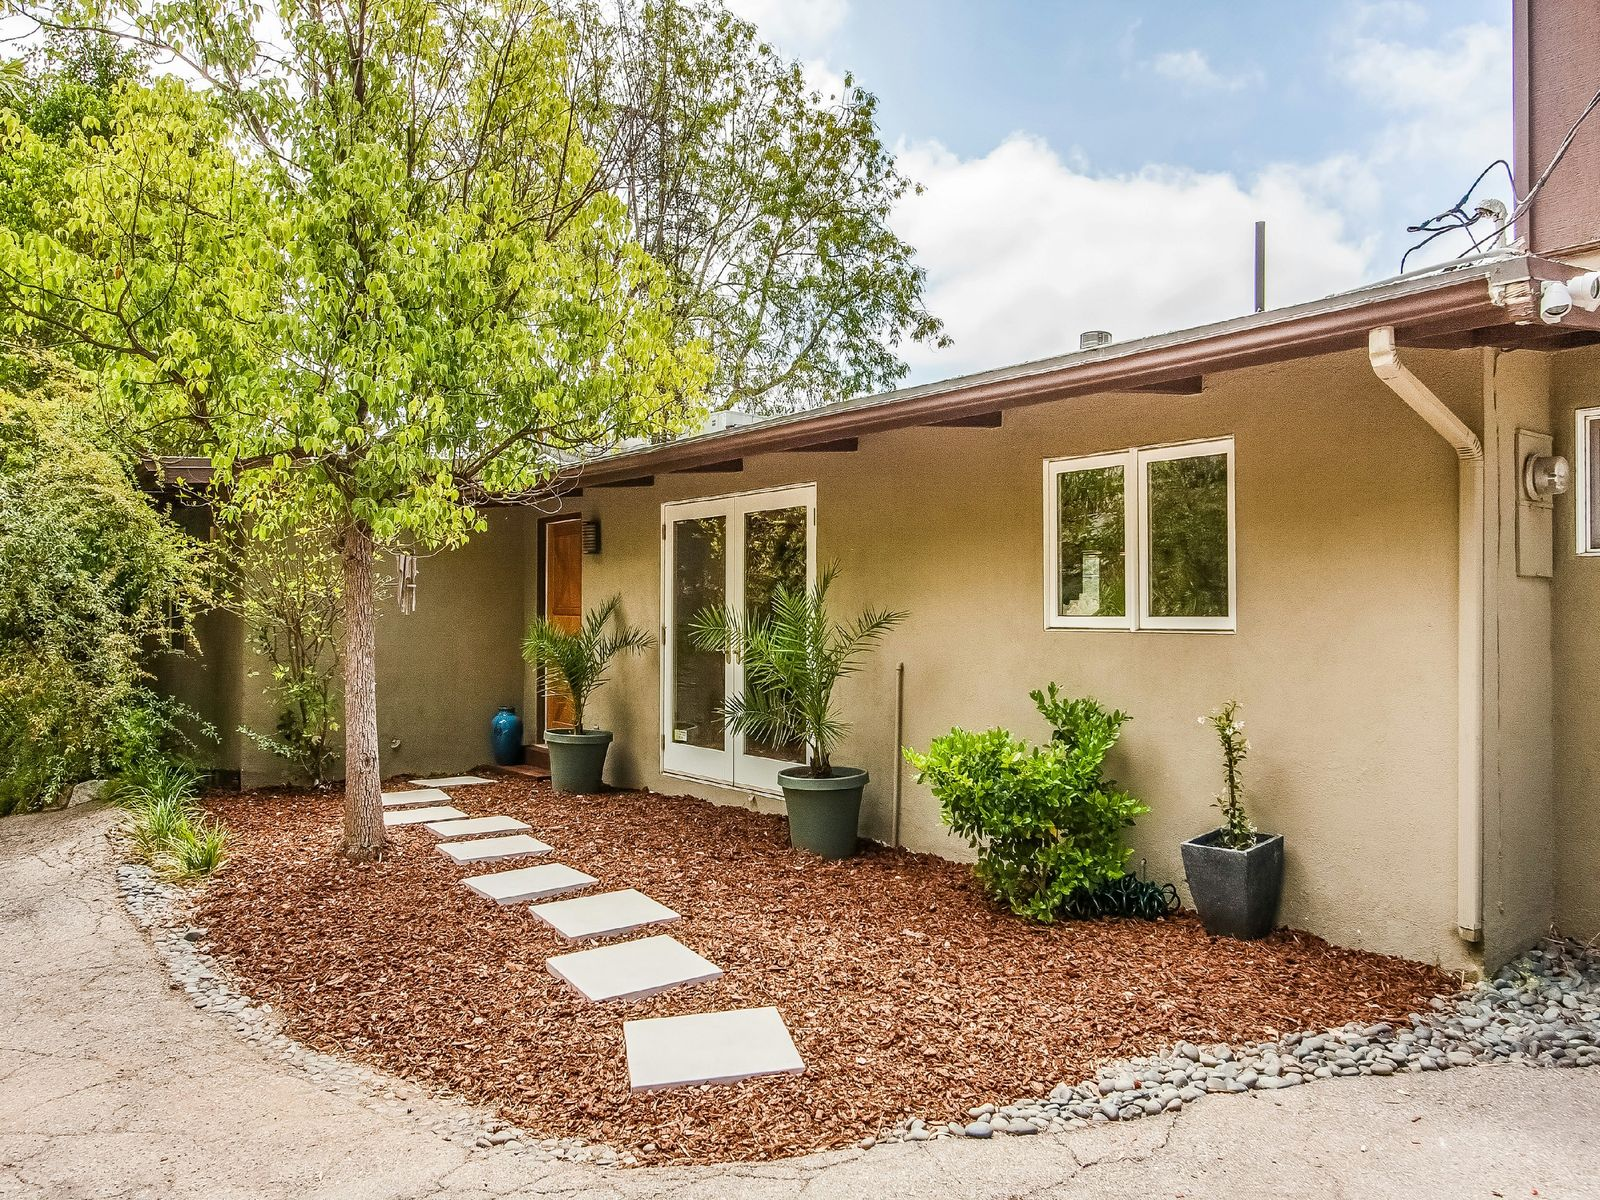 Near Woodland Hills Country Club, Woodland Hills CA Single Family Home - Los Angeles Real Estate